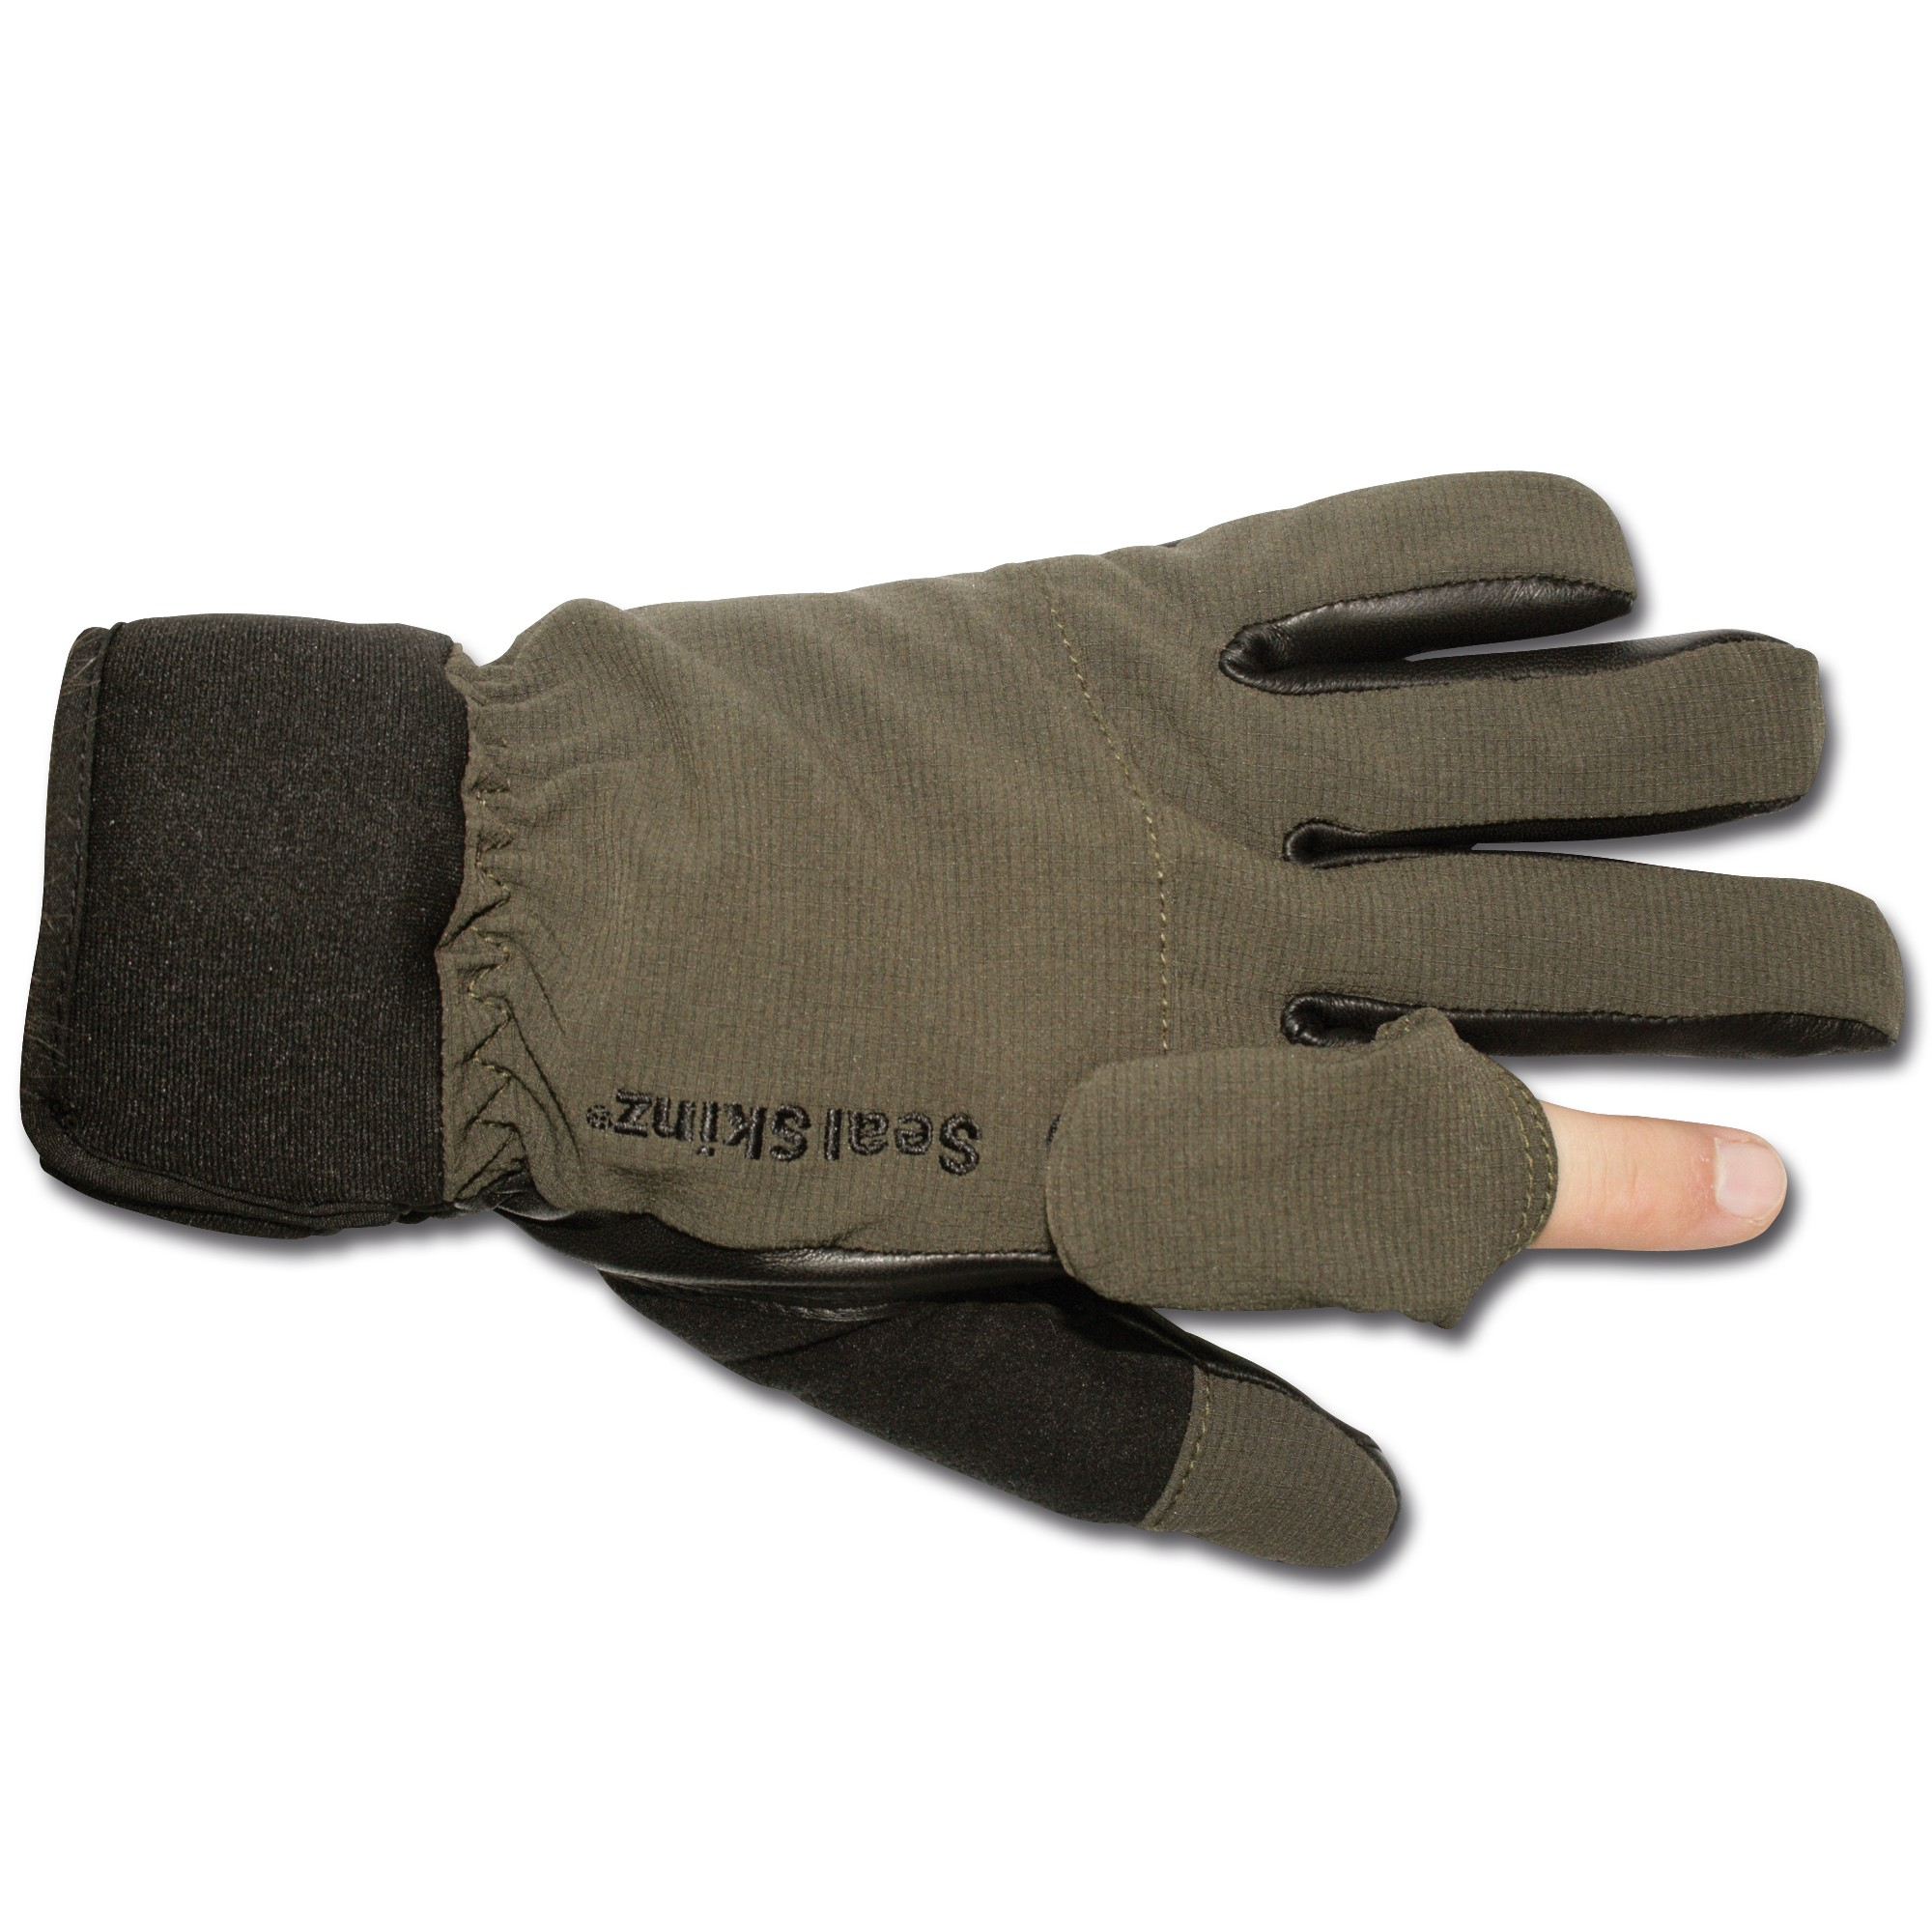 SealSkinz Shooting Glove Leather 100/% Waterproof /& Breathable